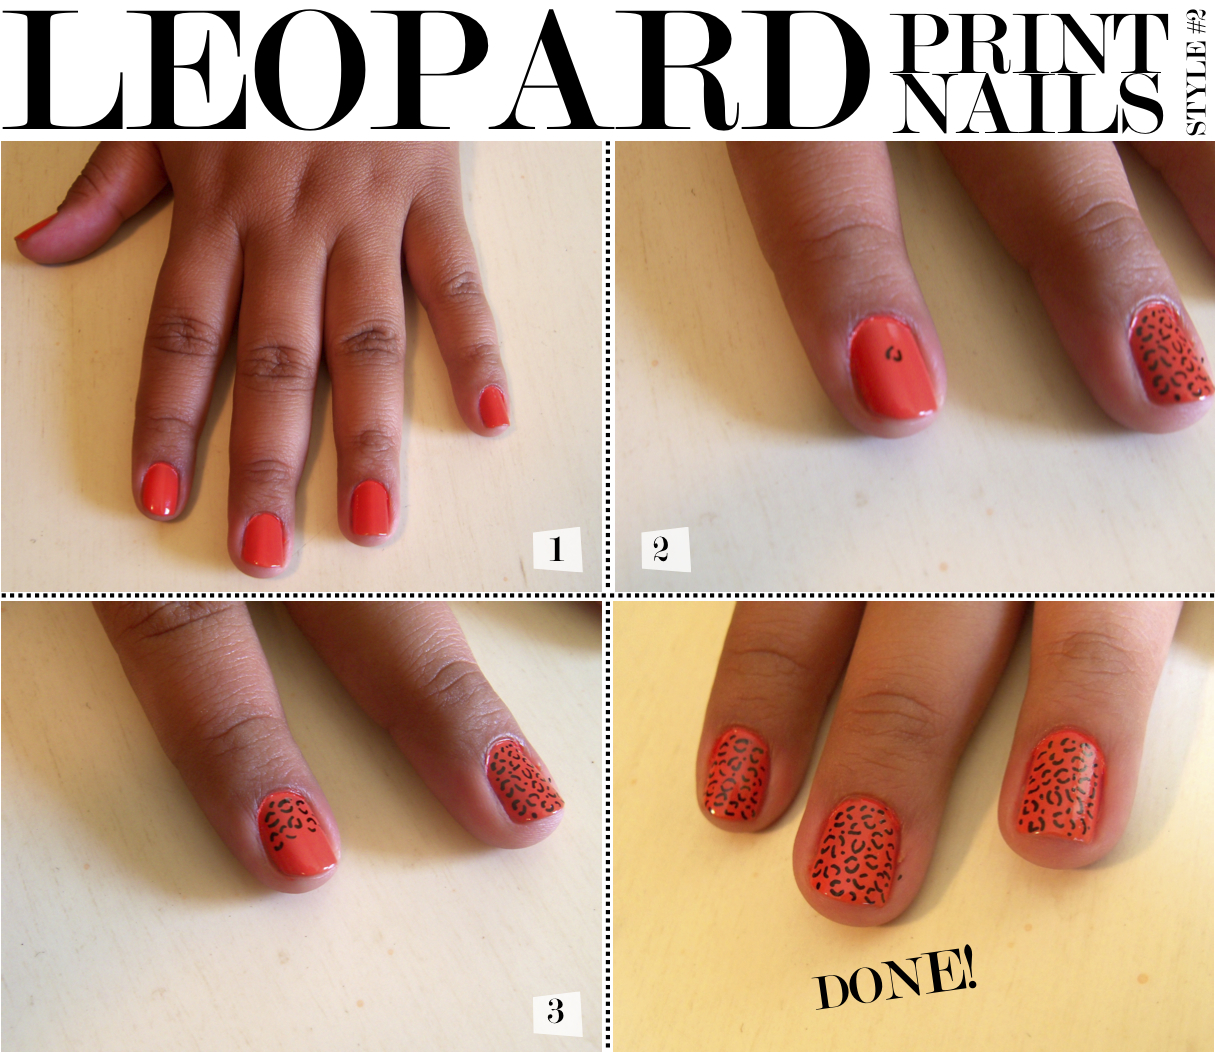 leopardprintnails2